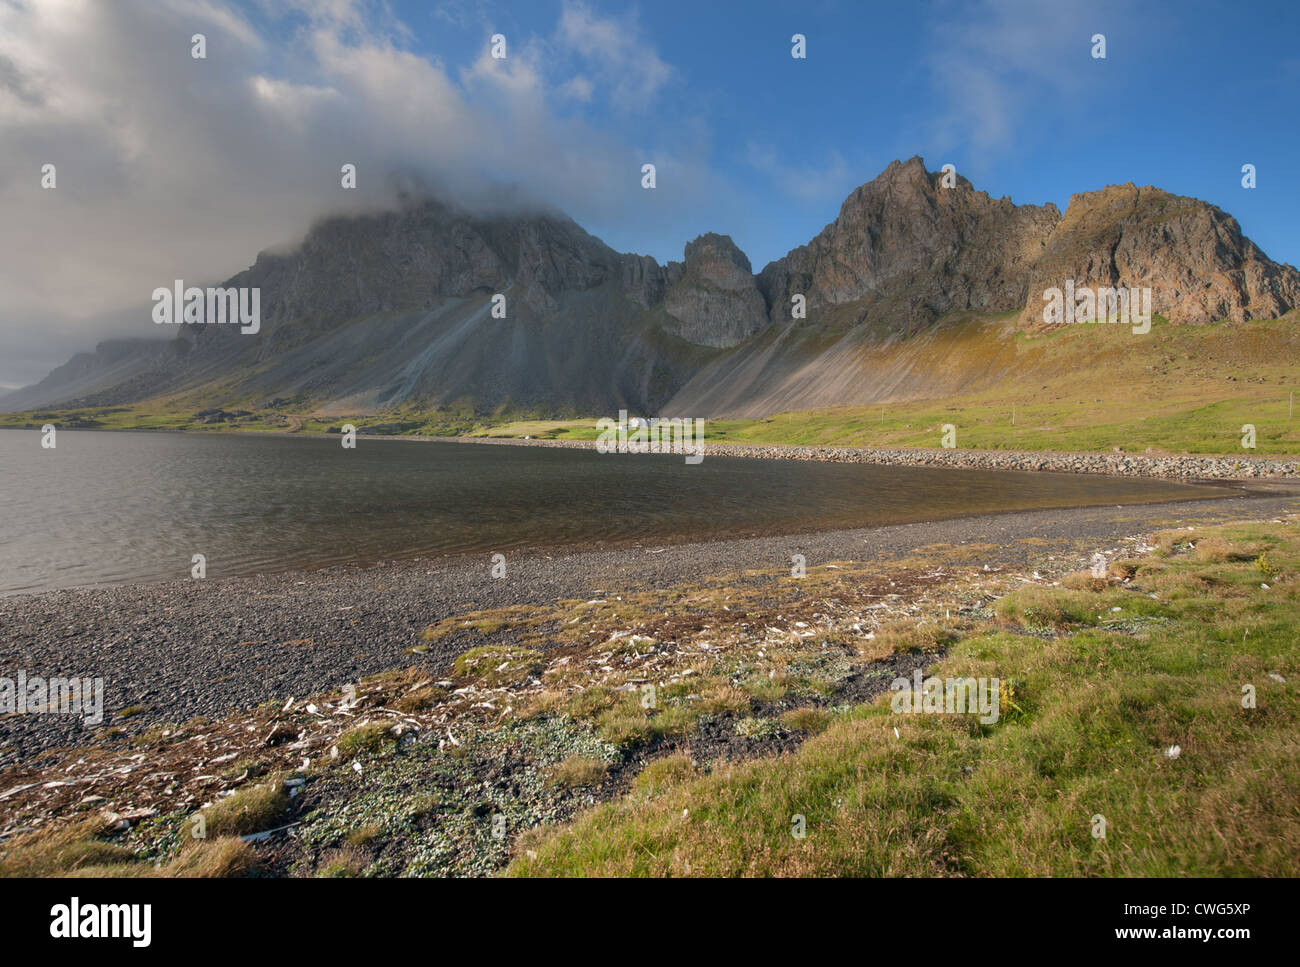 Clouds roll down from a mountain on Iceland's south coast near Höfn Stock Photo